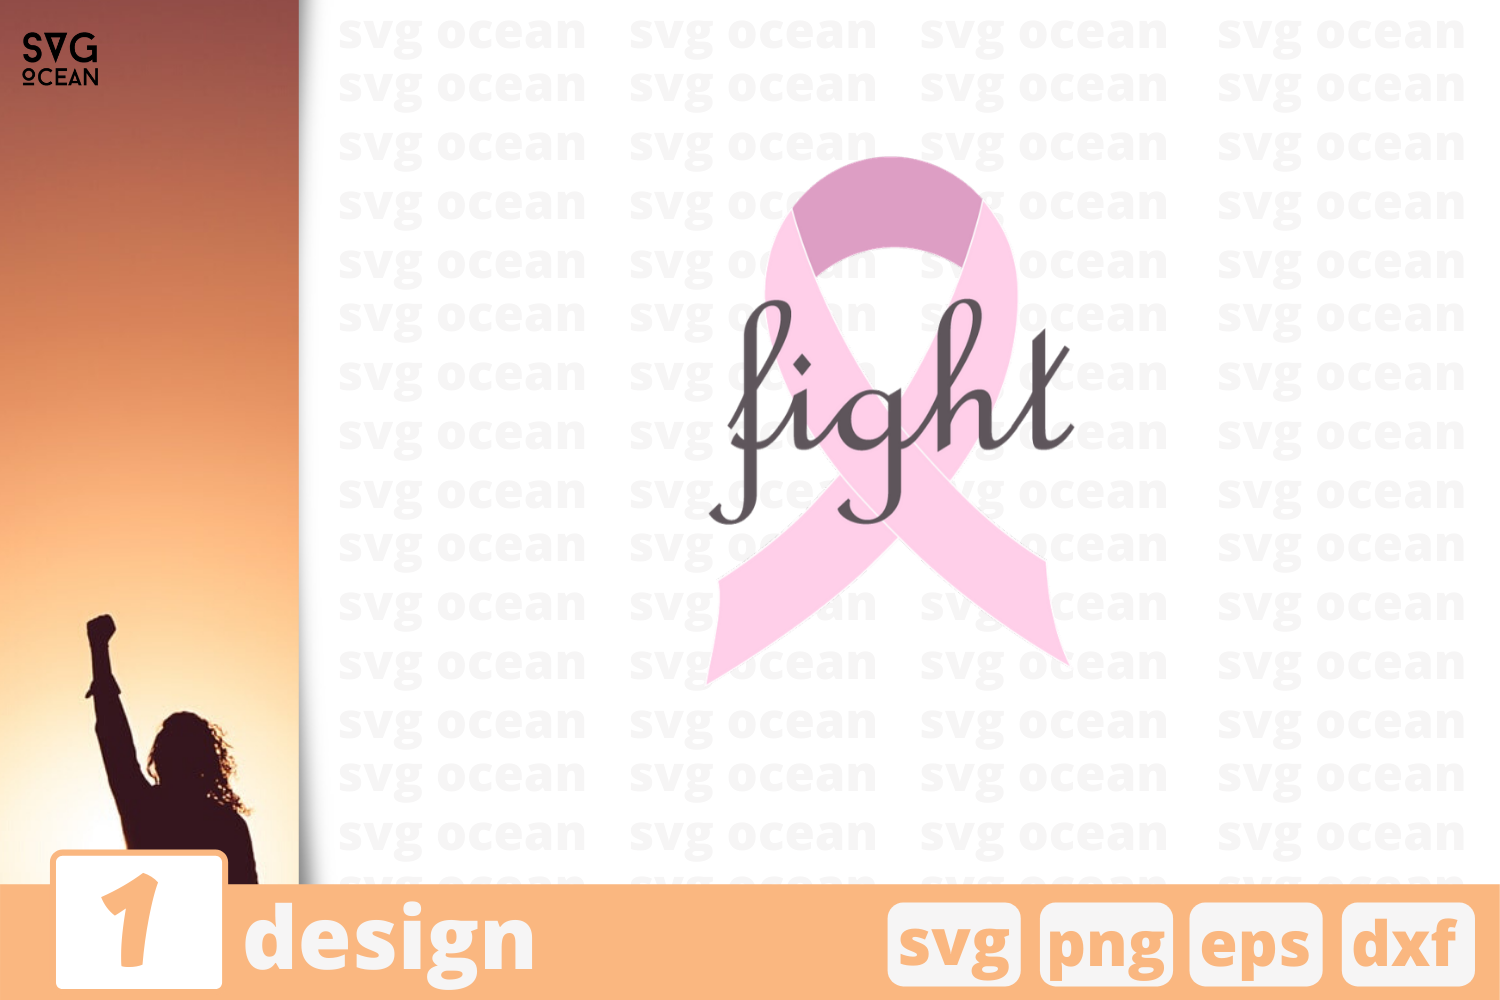 Download Free 1 Fight Svg Bundle Quotes Cricut Svg Graphic By Svgocean for Cricut Explore, Silhouette and other cutting machines.